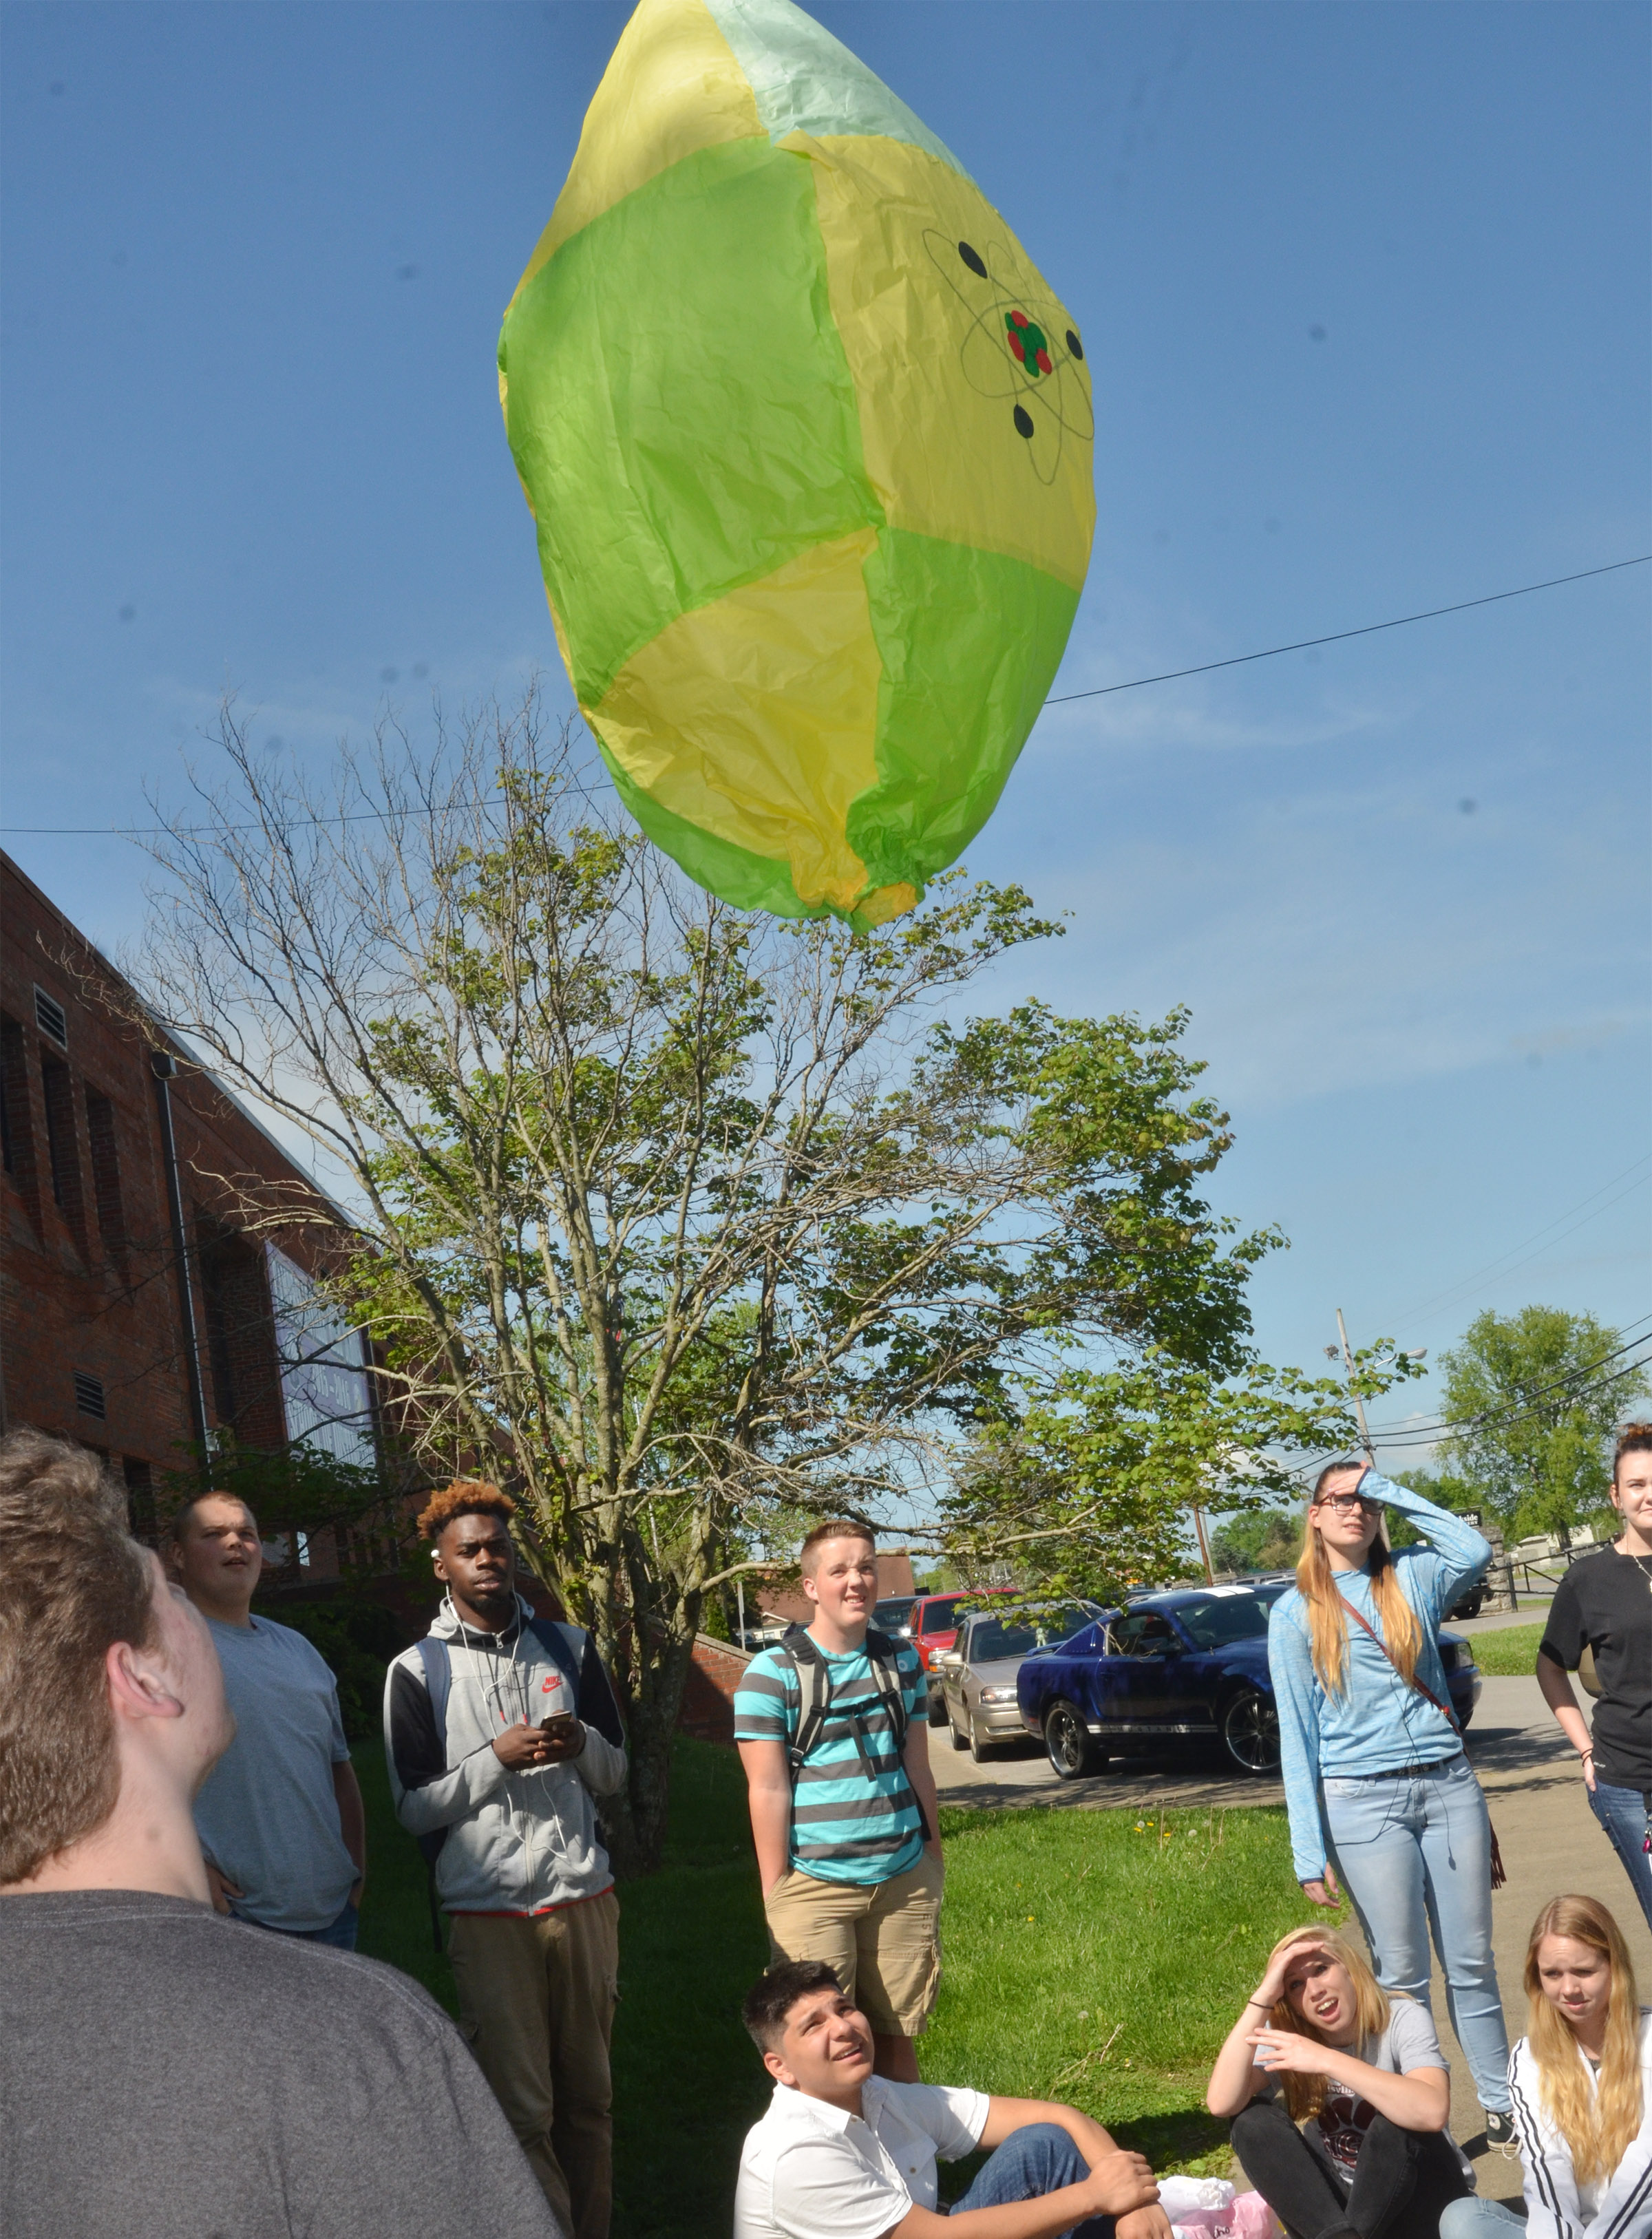 CHS students watch as a hot air balloon flies.